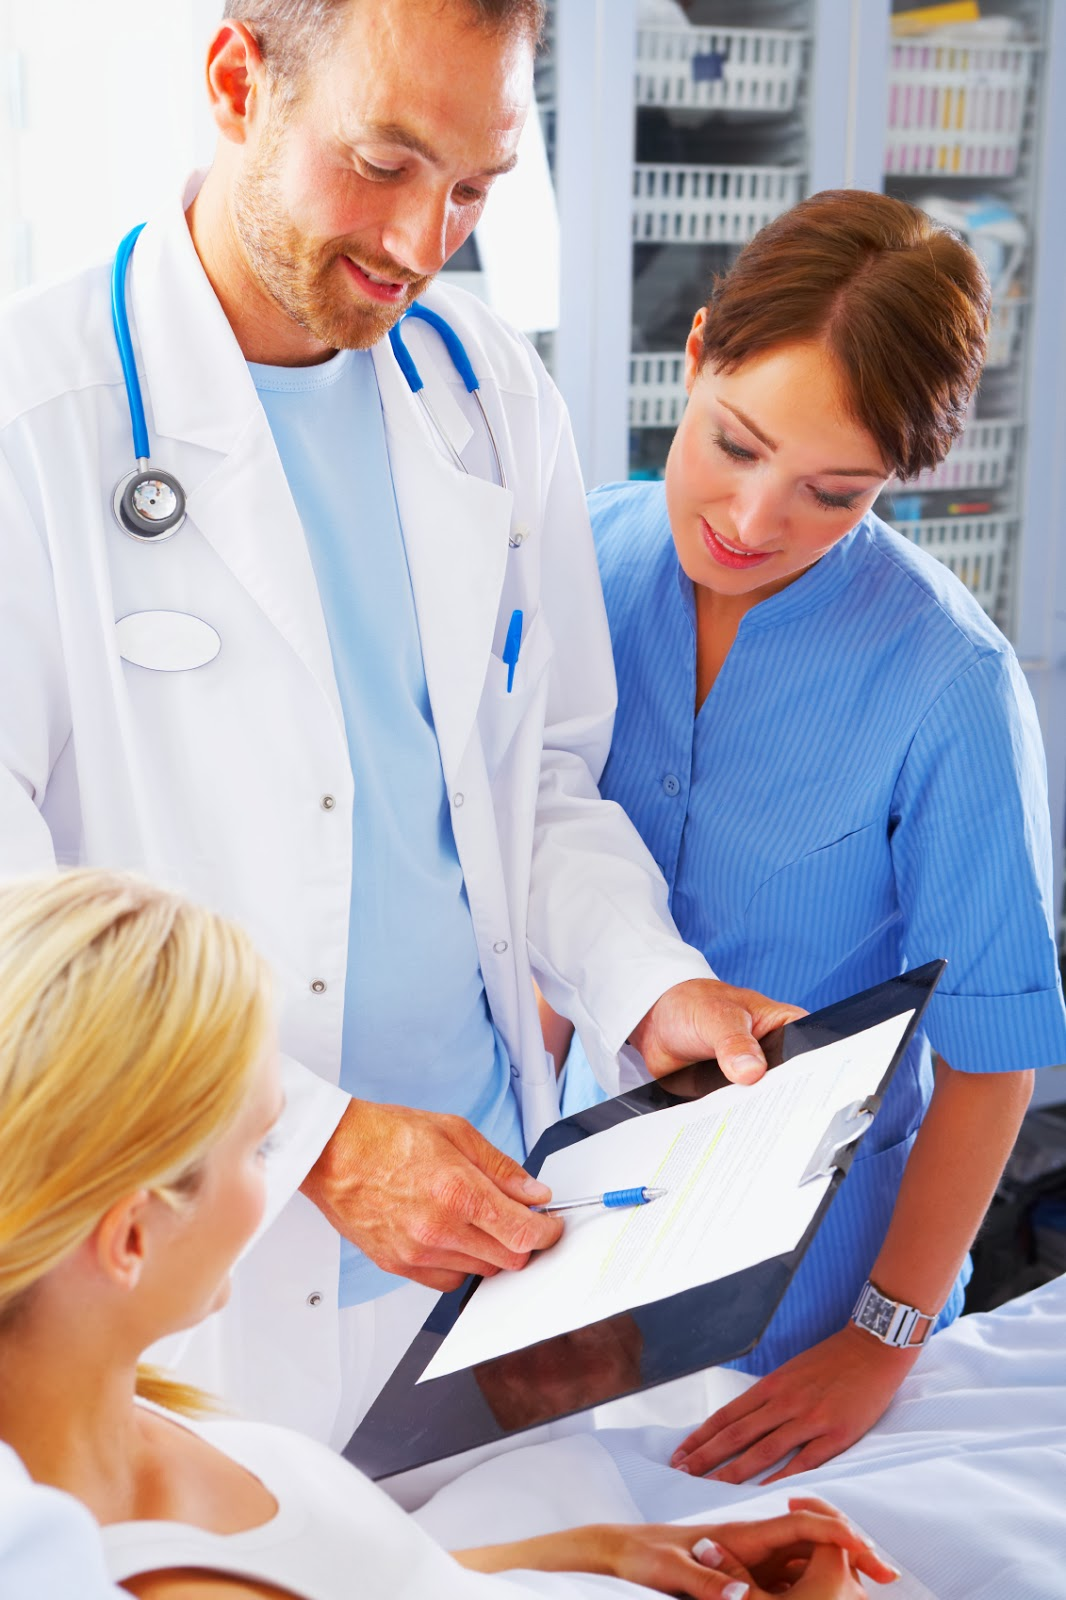 ethics physician dating patient Patient attracted to her doctor doc seems interested can they  ethical guidelines governing physician-patient  ama doesn't prohibit doctors from dating ex.